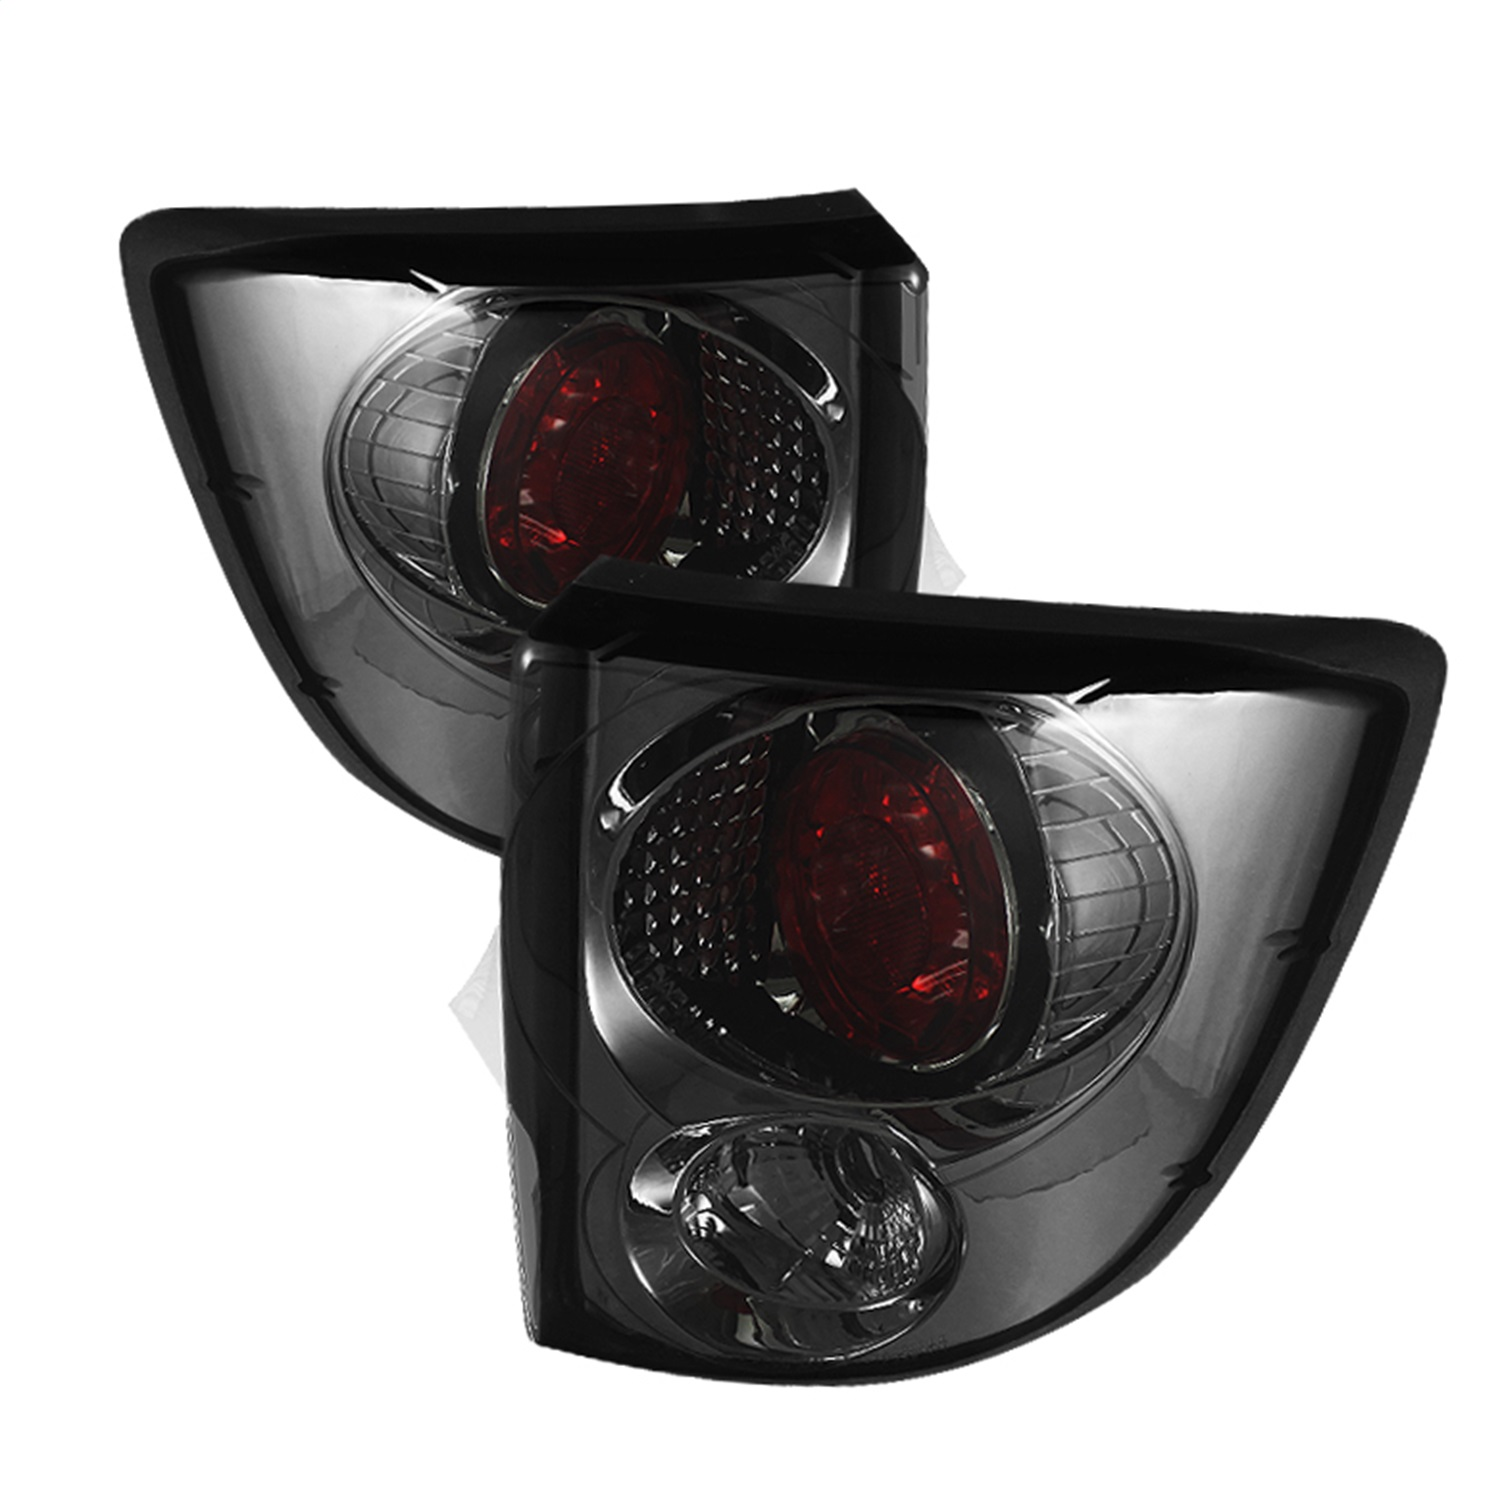 Spyder Auto 5033703 Euro Style Tail Lights Fits 00-05 Celica